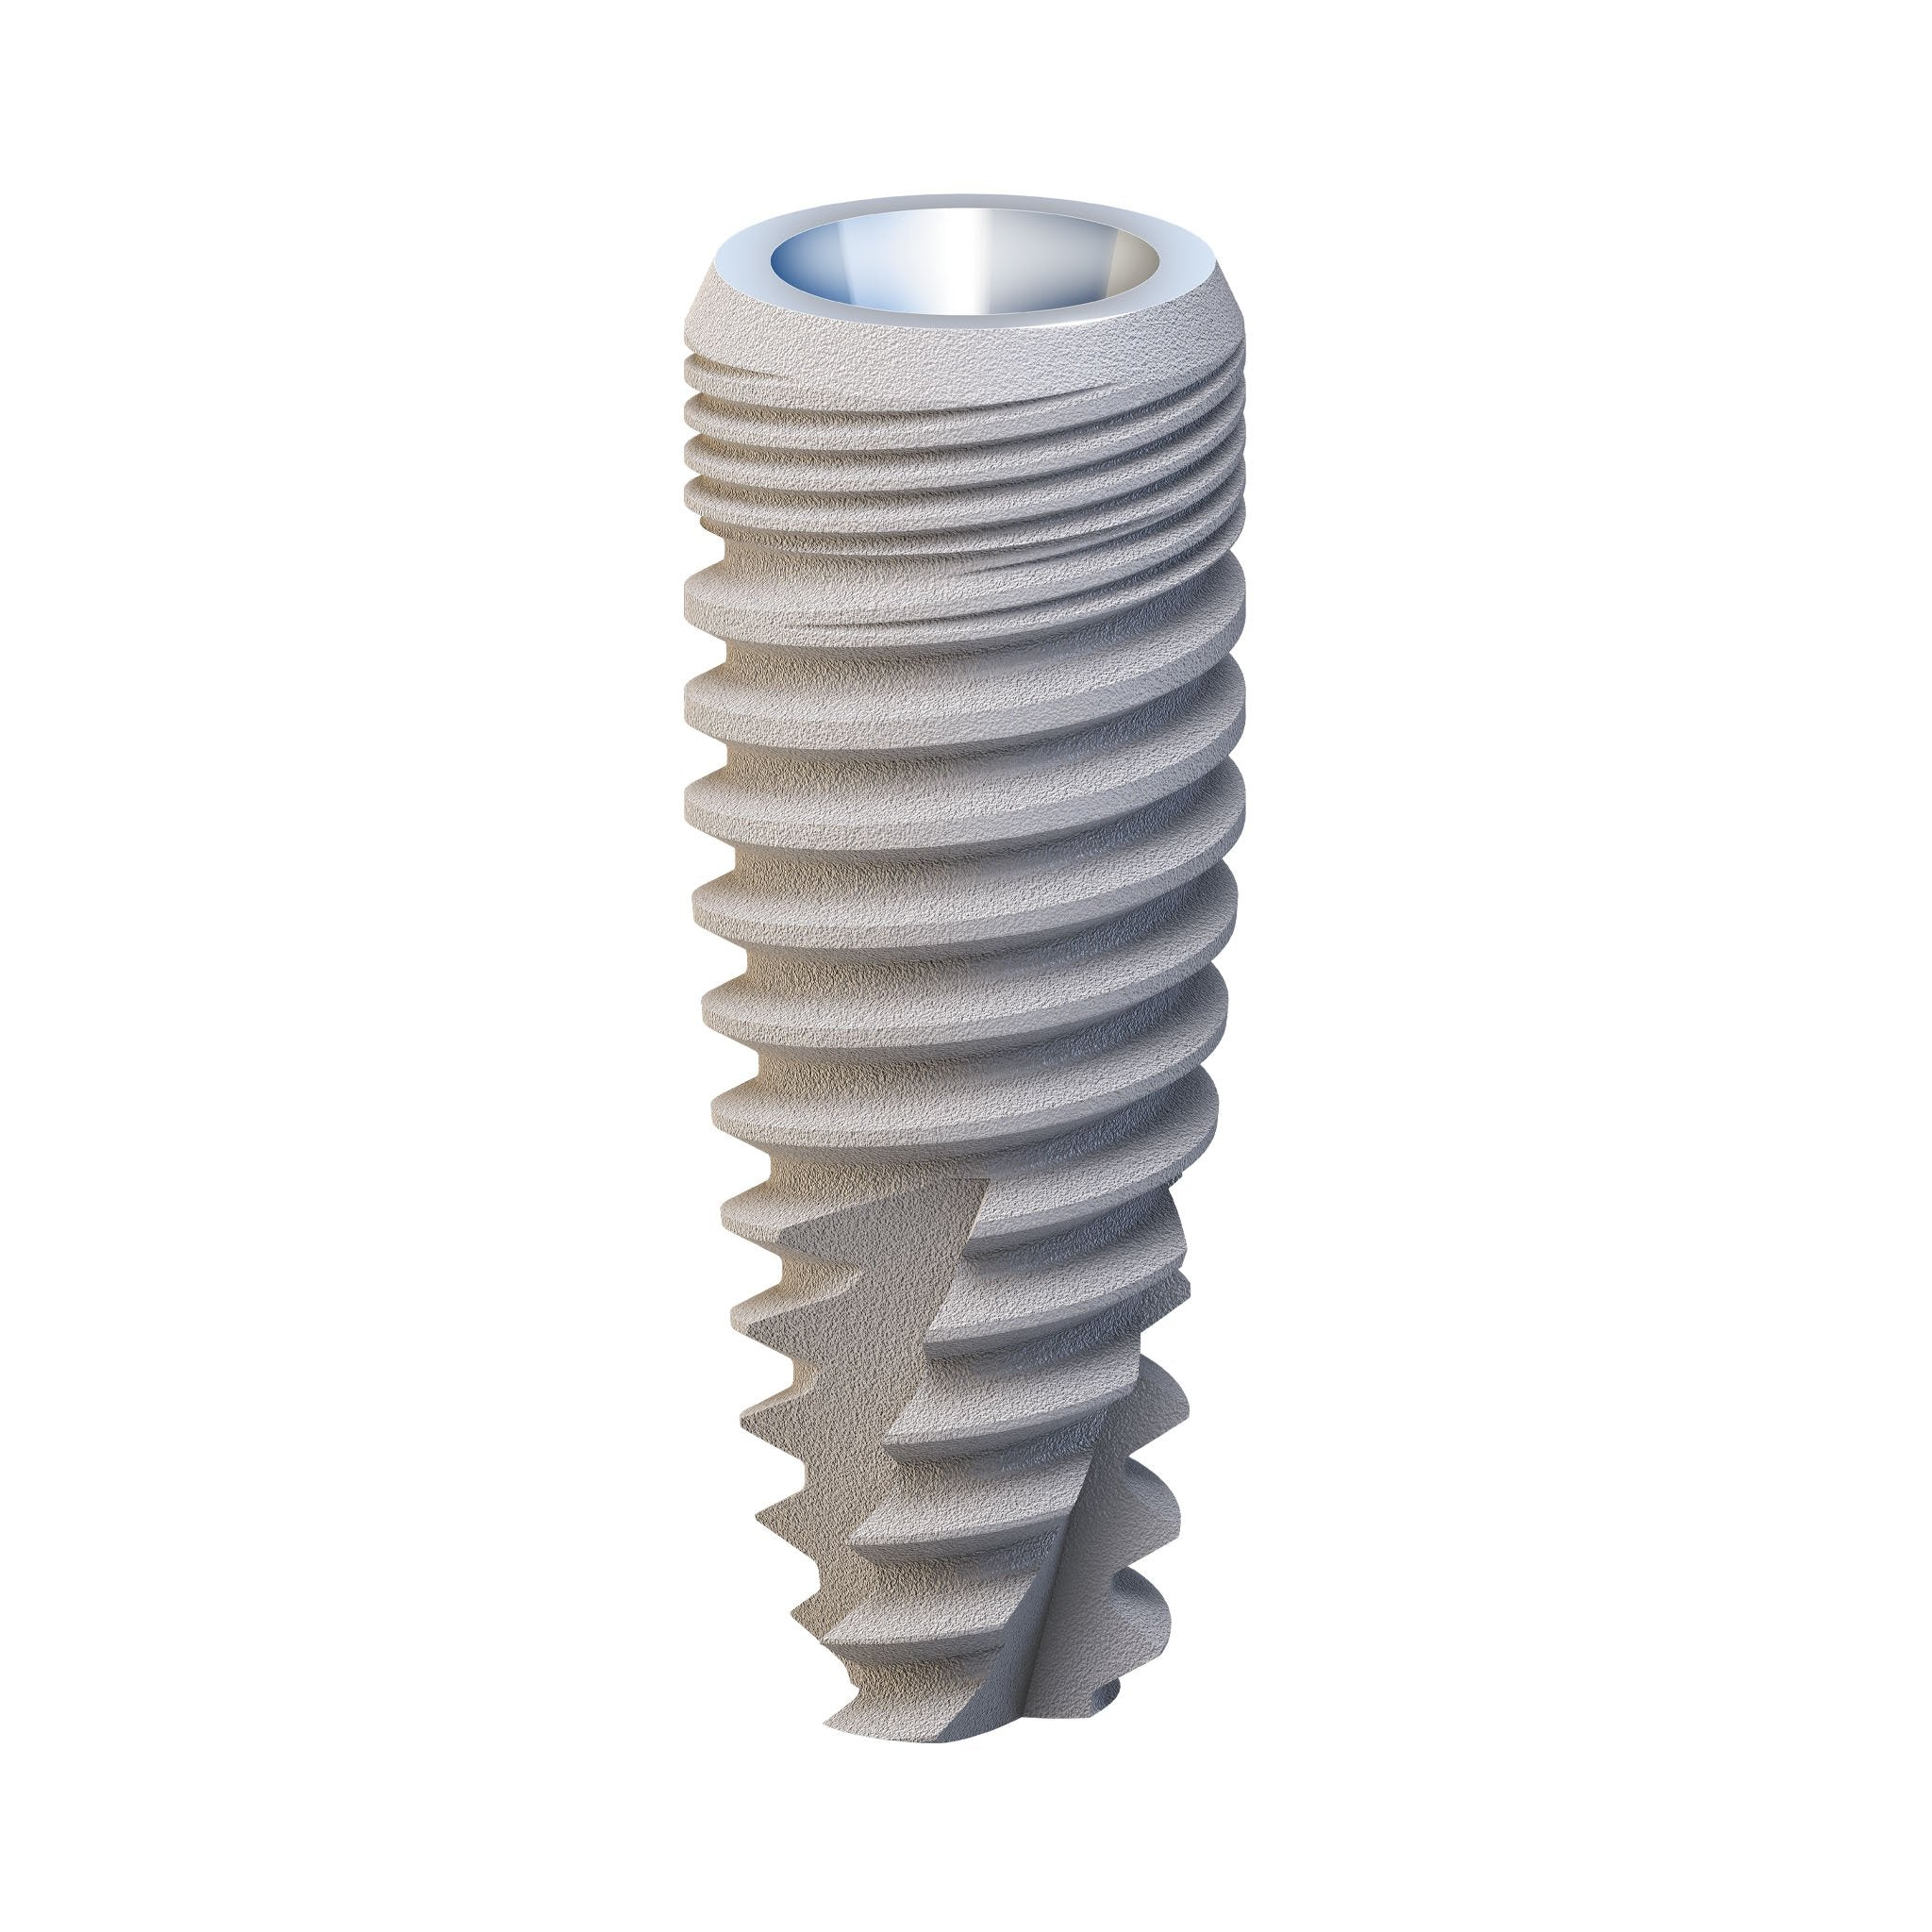 Conical Active Implant Ø 3.25 x 10mm | K3